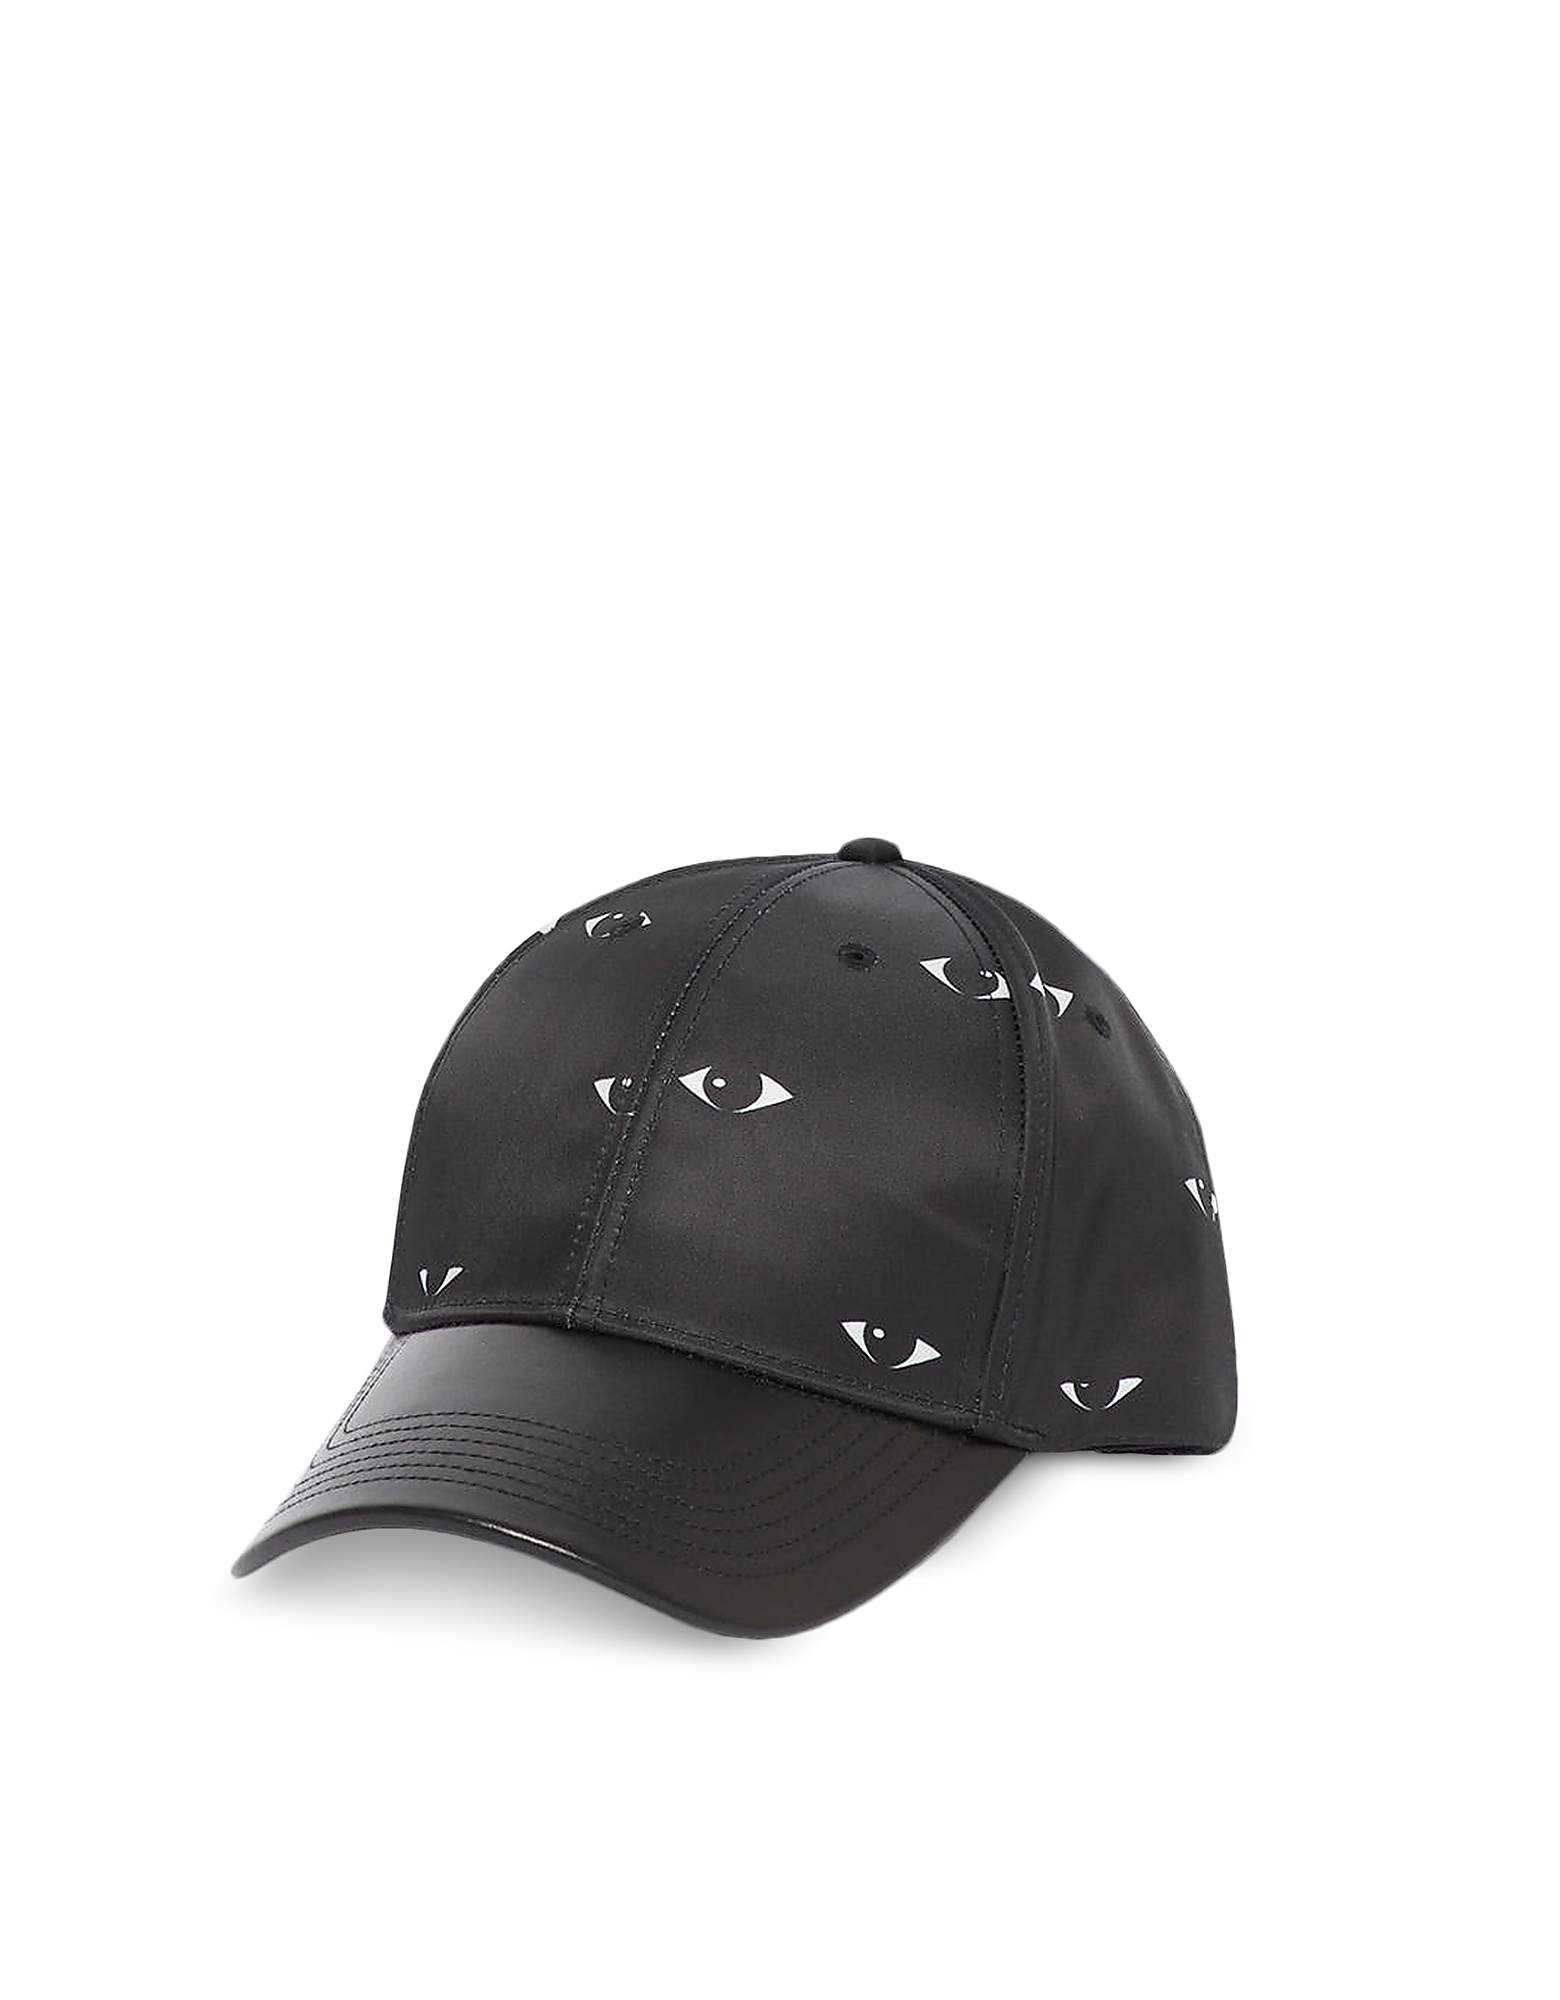 Kenzo Designer Men's Hats, Black Nylon & Leather Eyes Print Baseball Cap